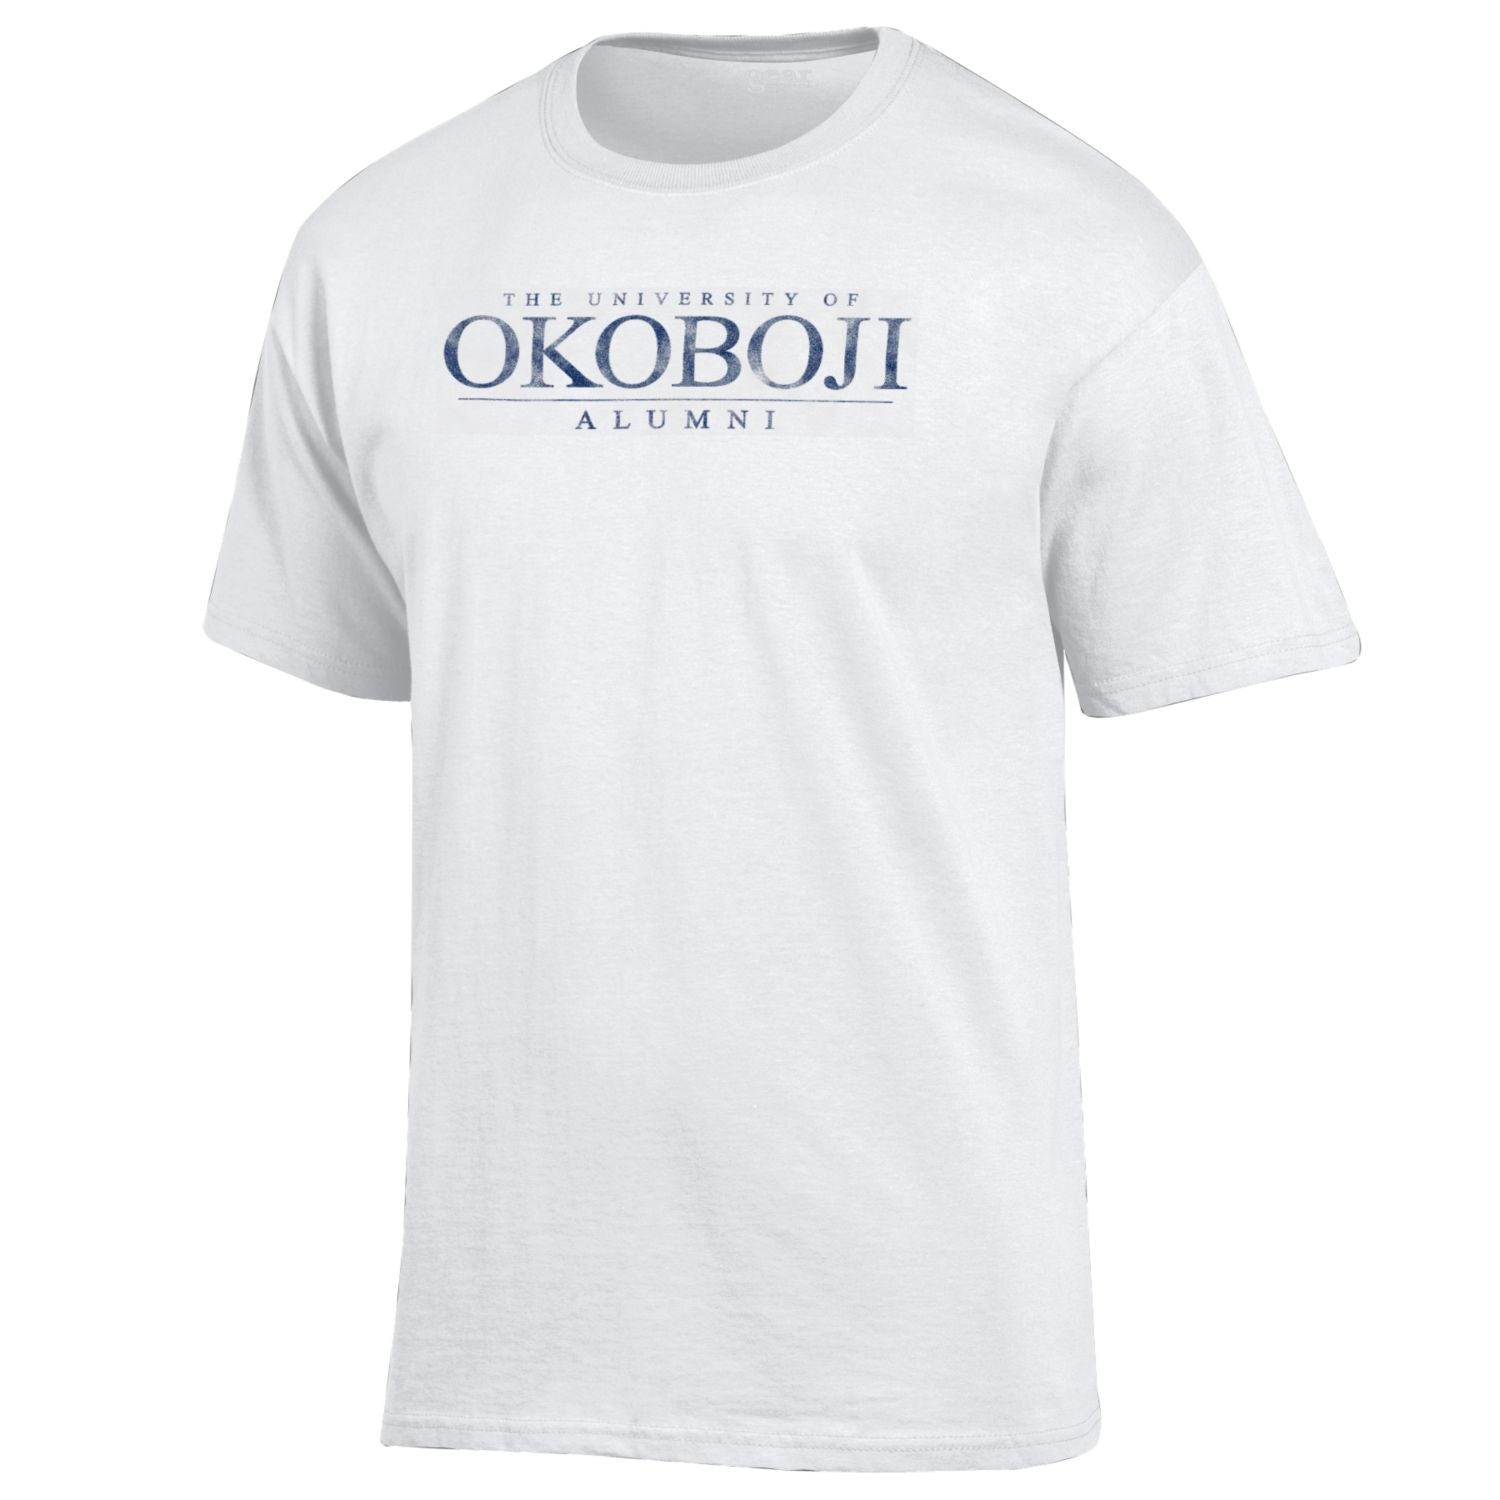 University of Okoboji Alumni - Tee